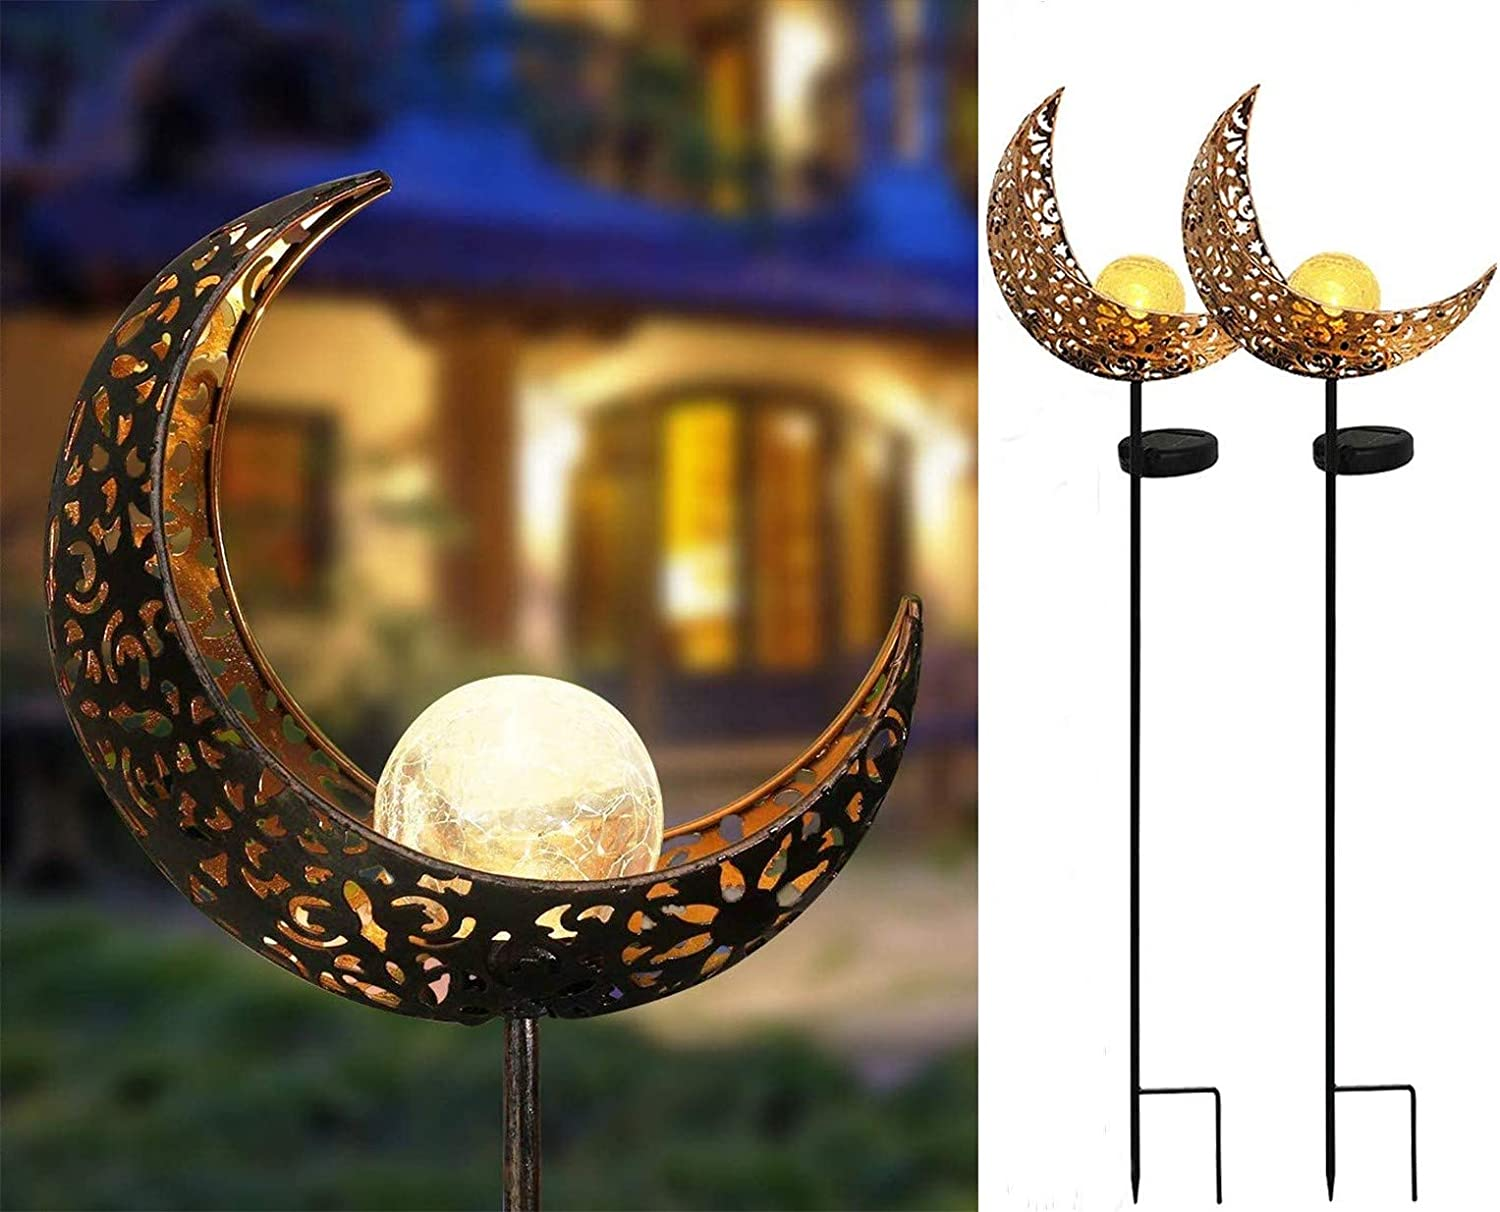 Joyathome Garden Solar Stake Lights Pathway Outdoor Moon Crackle Glass Globe Stake Metal Lights,Waterproof Warm White LED for Lawn,Patio or Courtyard